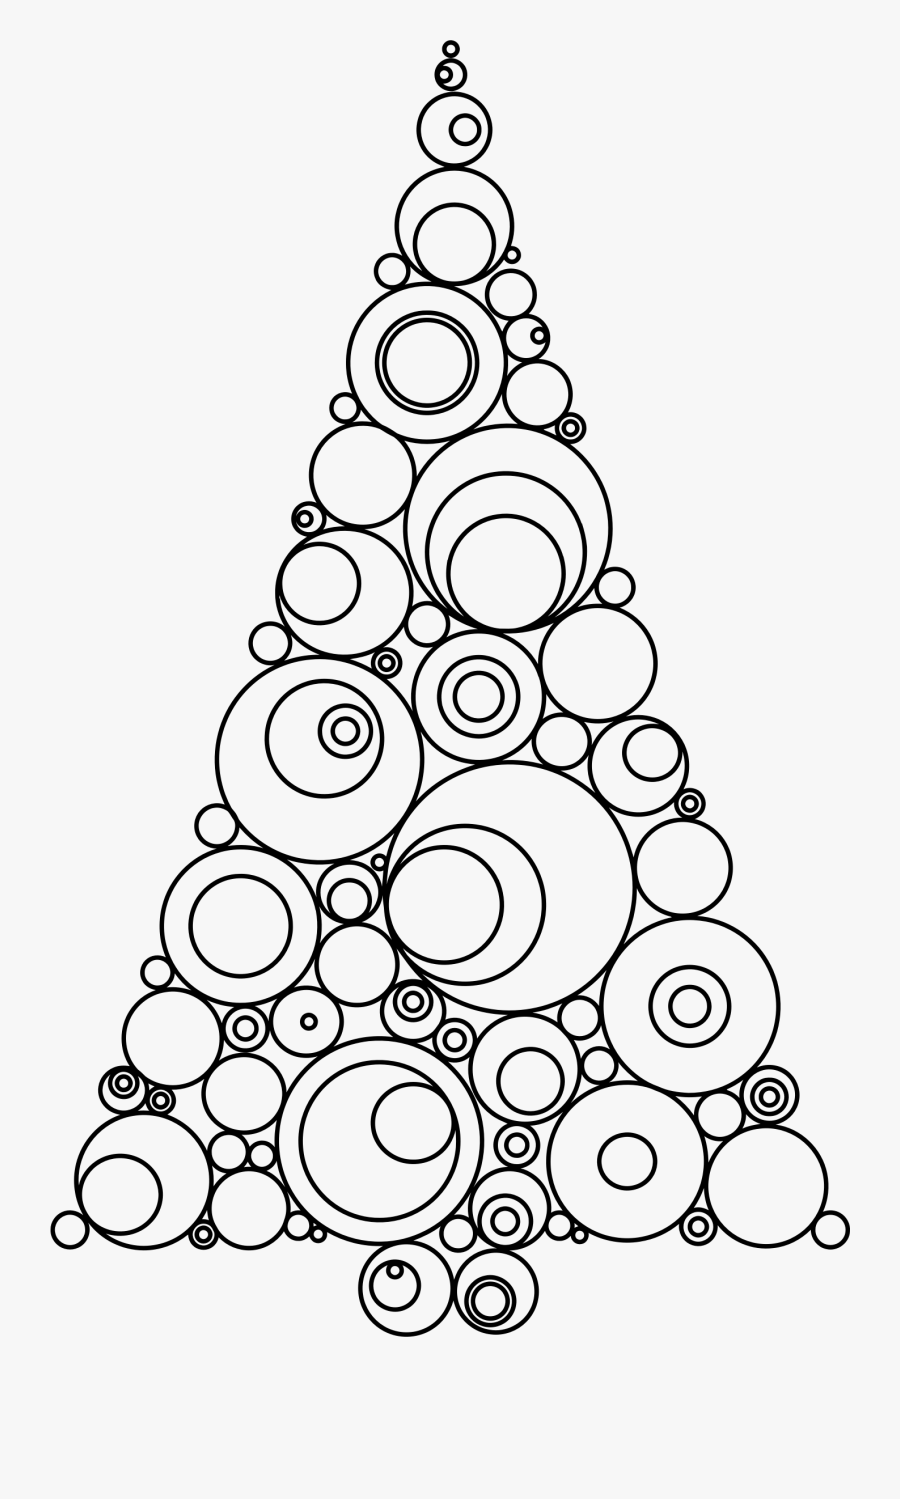 Abstract Christmas Tree Jpg Black And White Download - Abstract Christmas Tree Drawing, Transparent Clipart